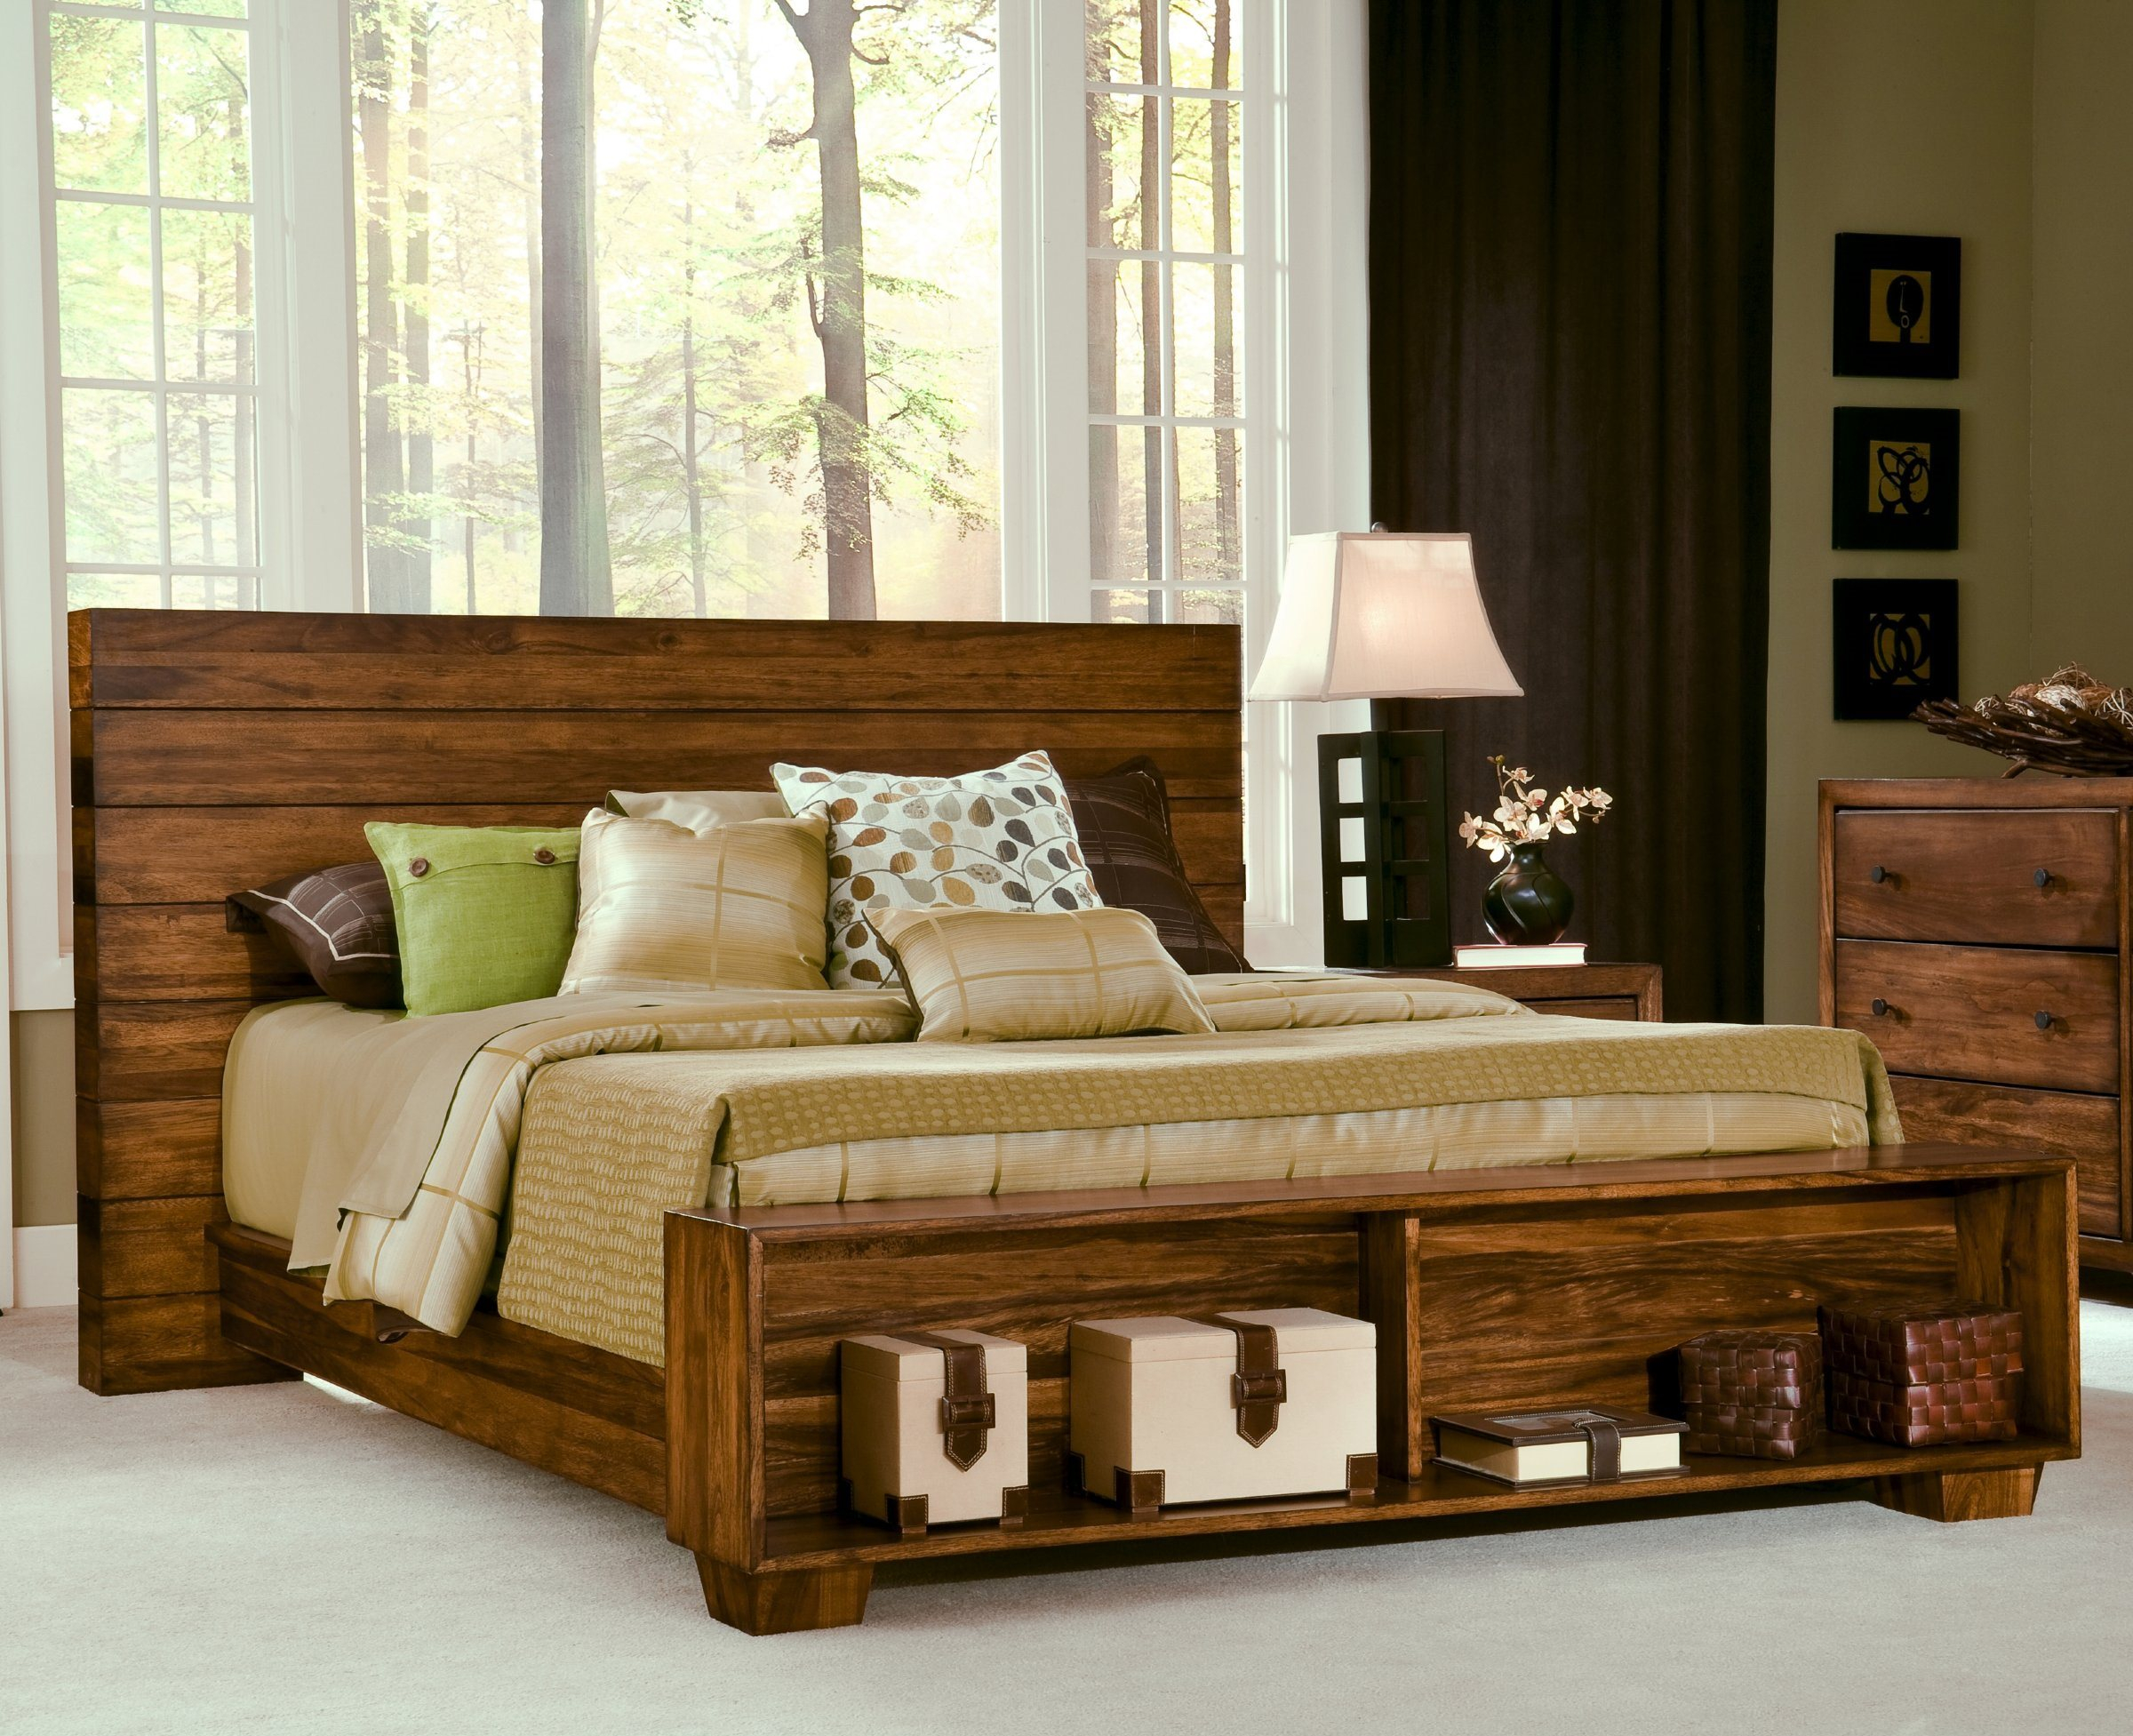 Modern King Size Bedroom Sets Ideas The New Way Home Decor within Modern King Size Bedroom Set